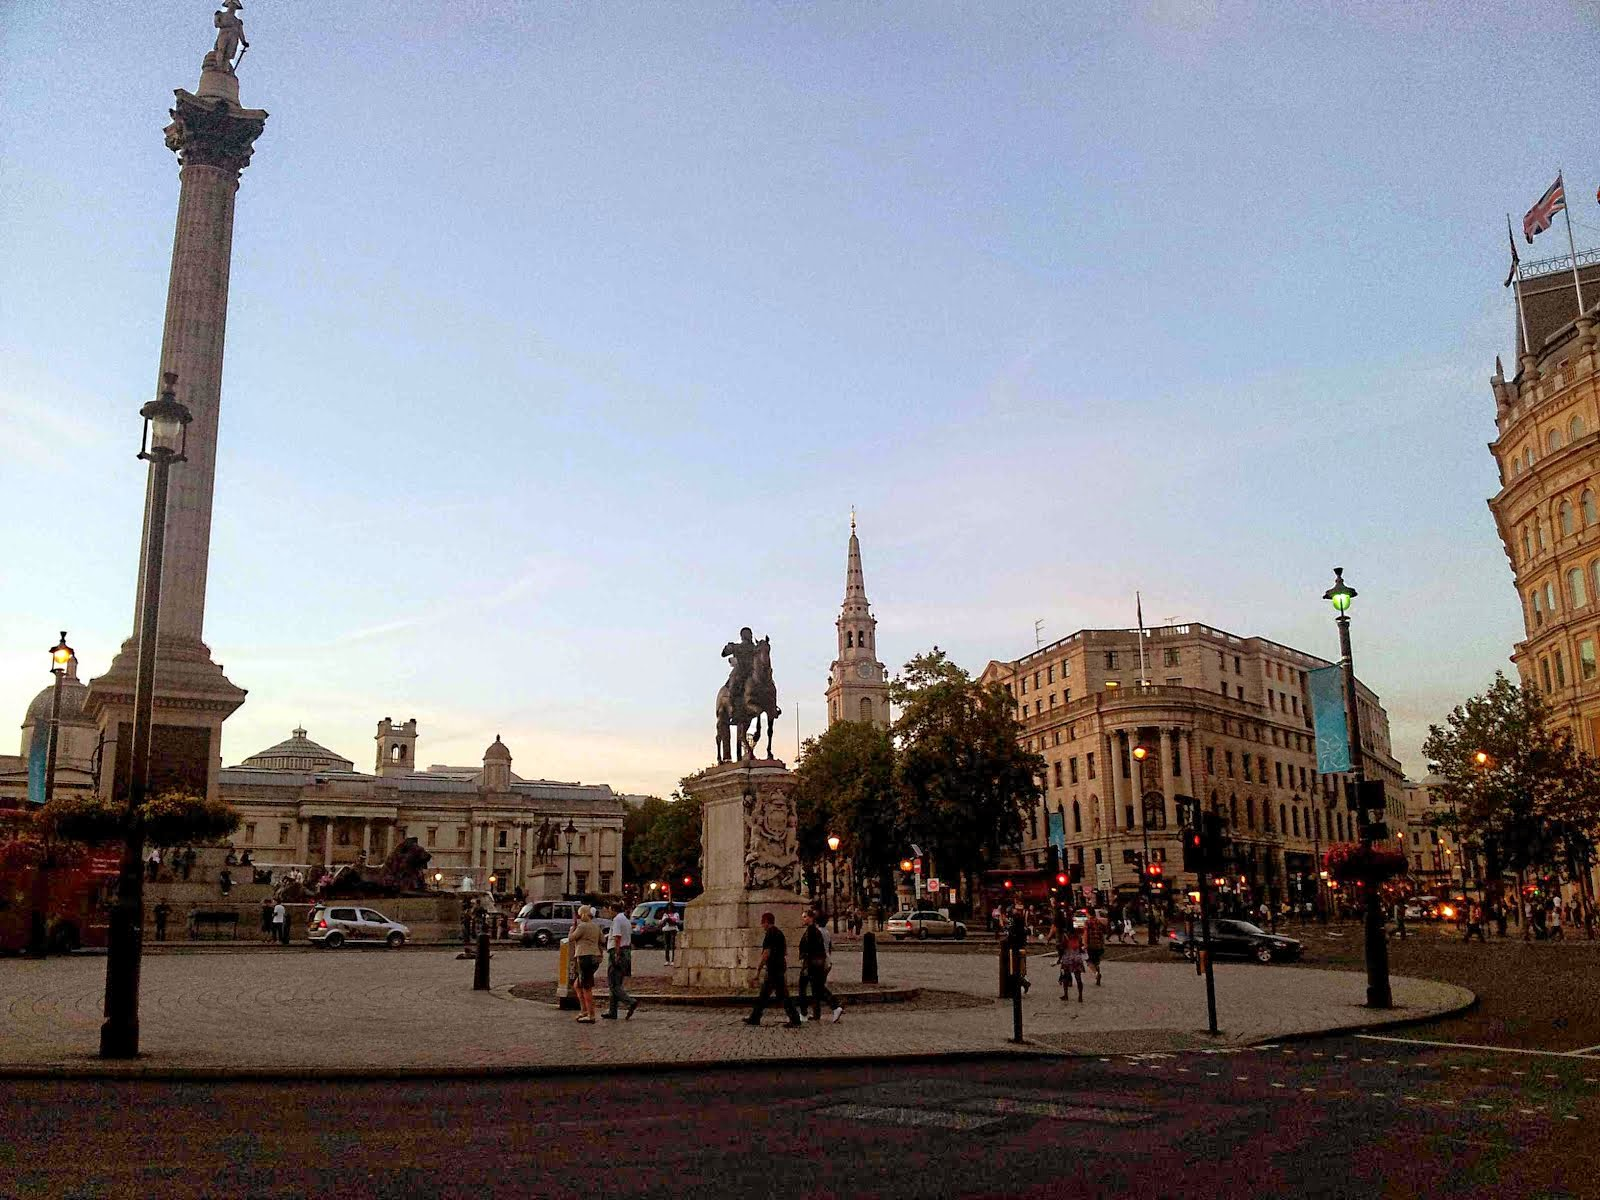 London, Trafalgar Square at dusk